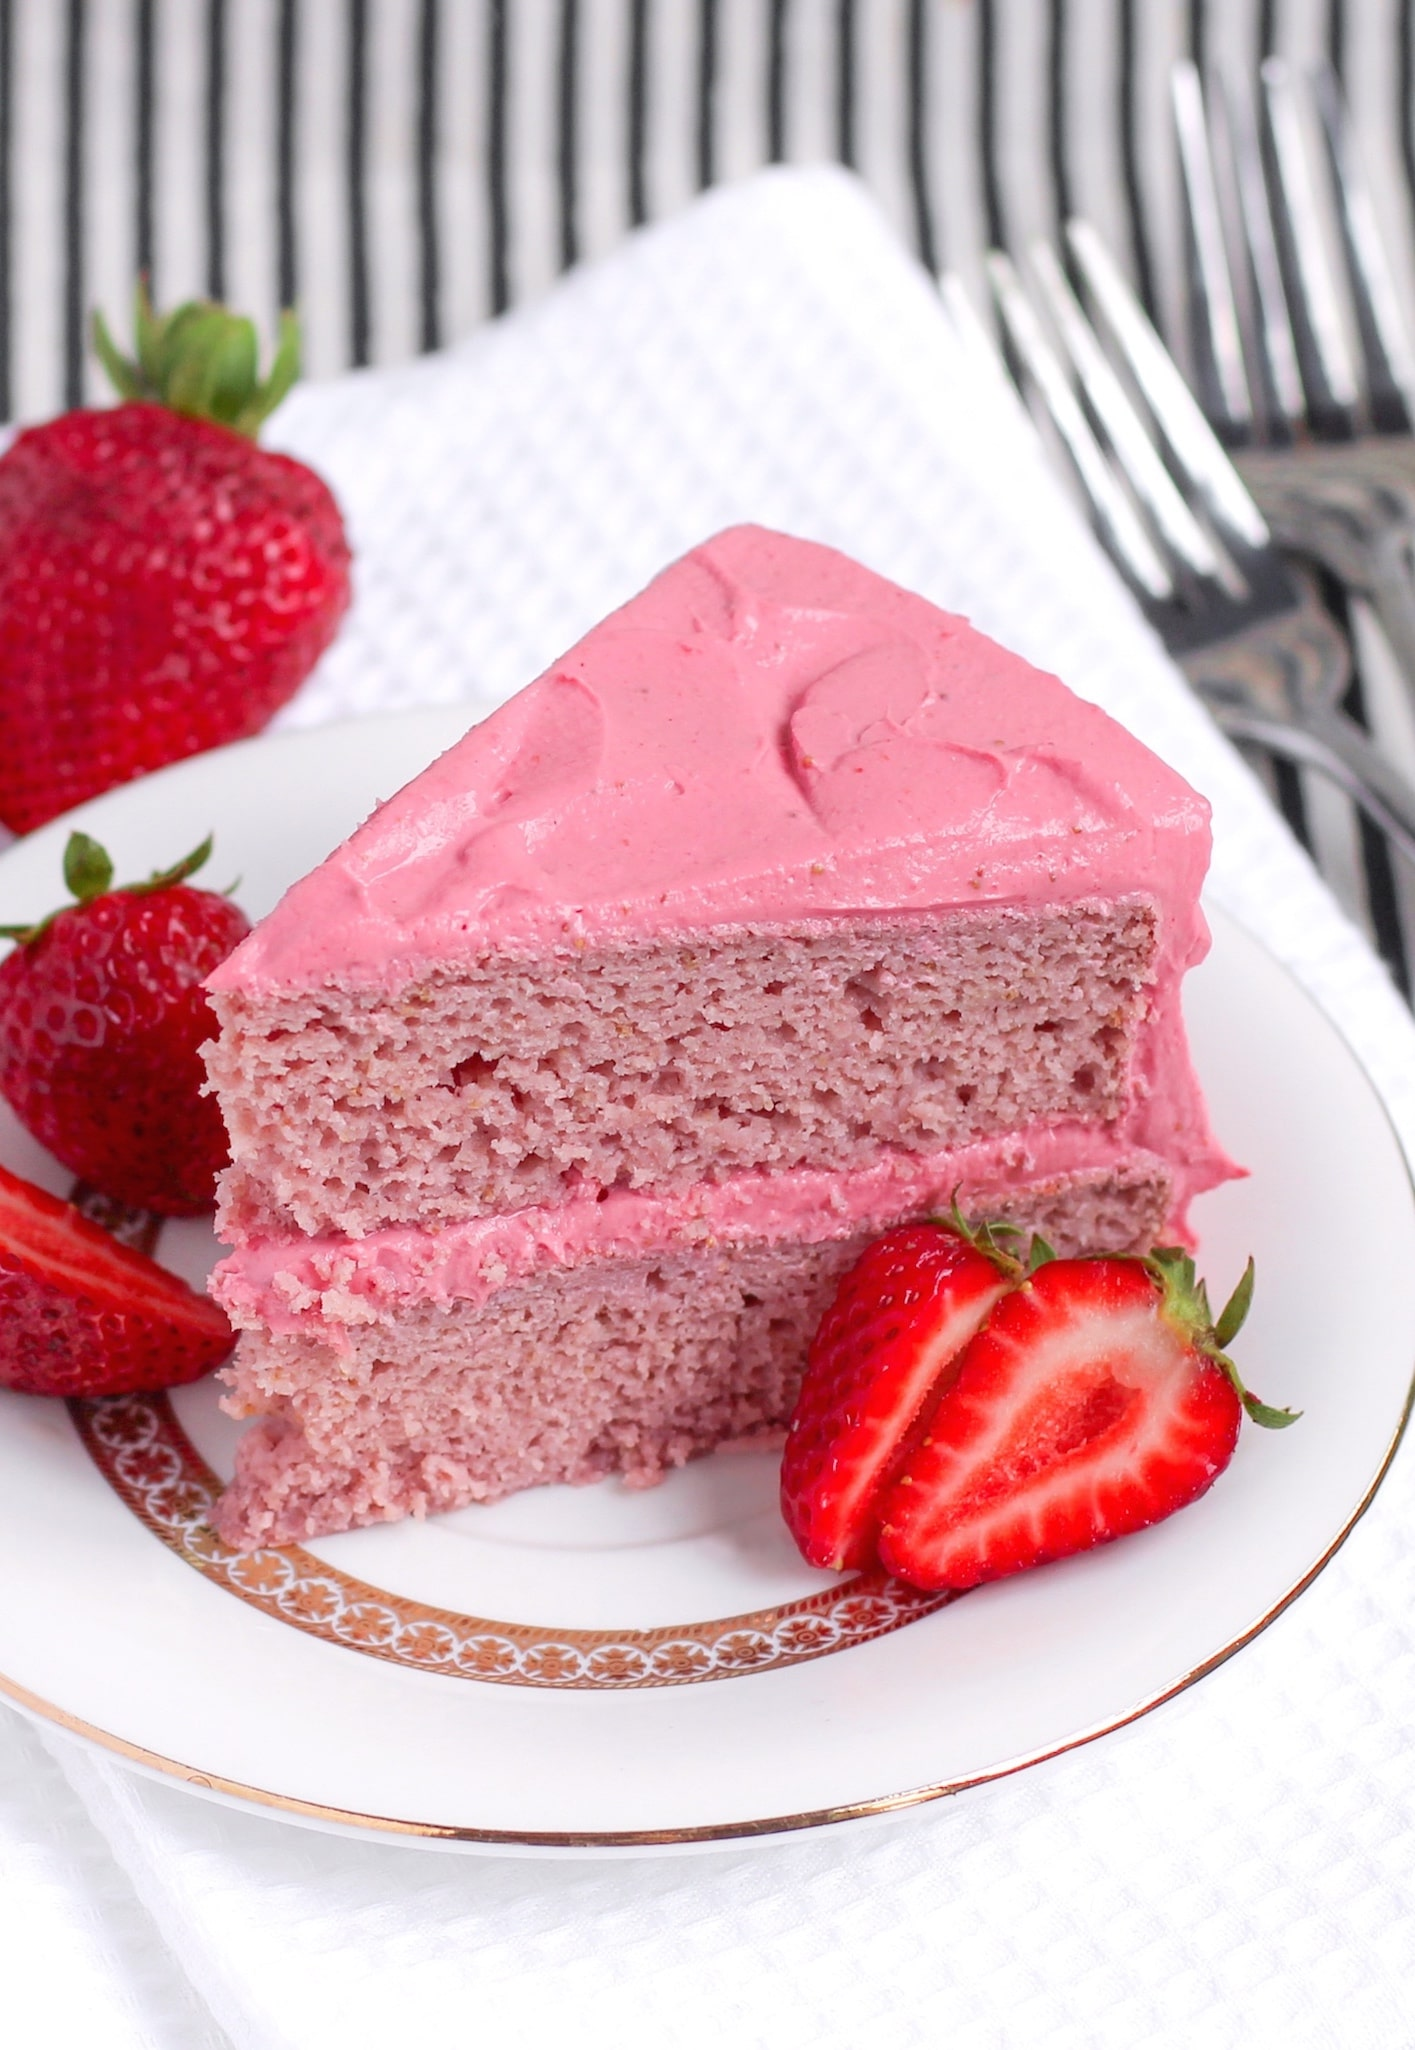 Organic Strawberry Cake Recipe